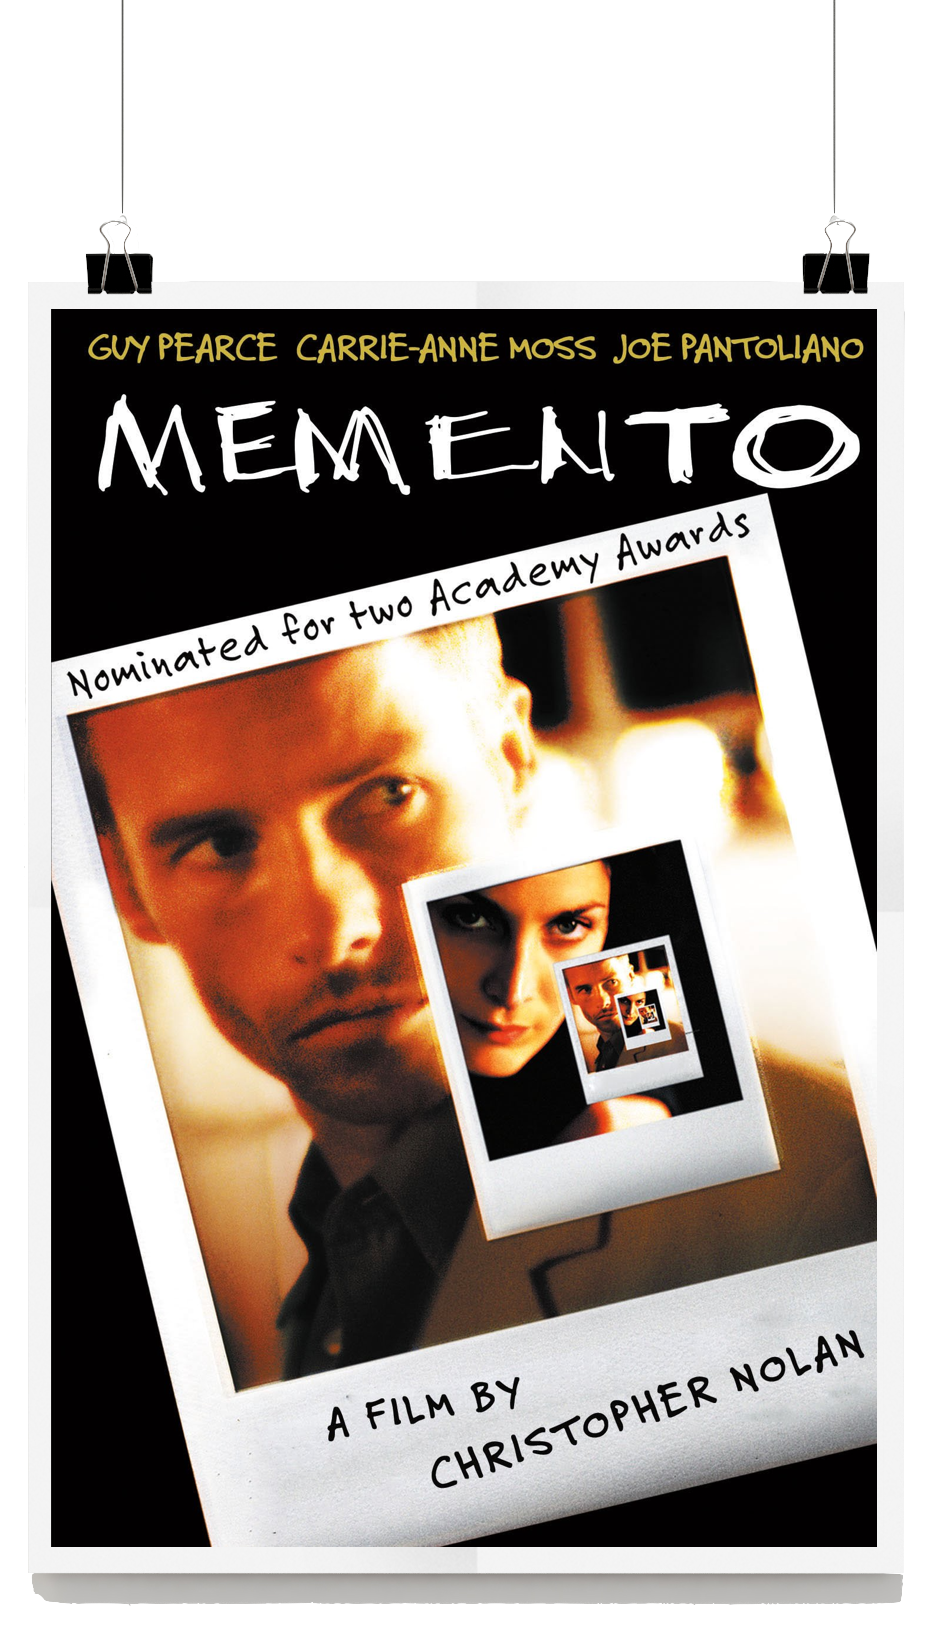 amnesia in memento directed by christopher nash Christopher nolan's memento is an intricate, original, fascinating thriller, hailed by philip french of the observer as 'one of the year's most exciting pictures' its protagonist leonard (guy pearce) is a puzzle, even to himself.